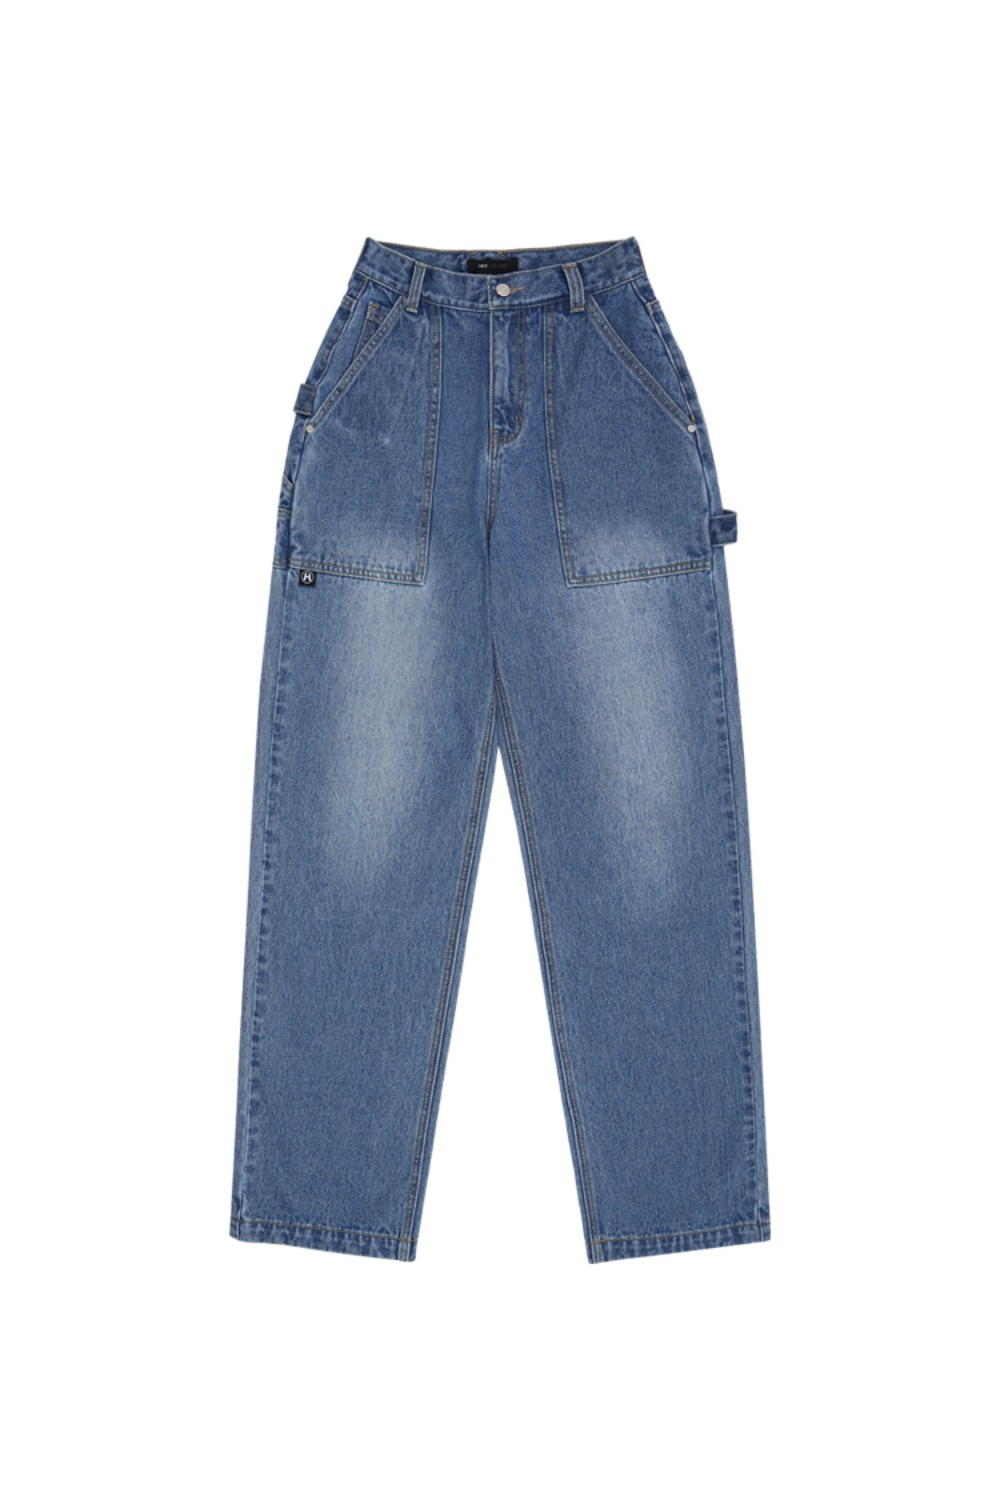 HIDE Out Pocket Denim Pants BLUE